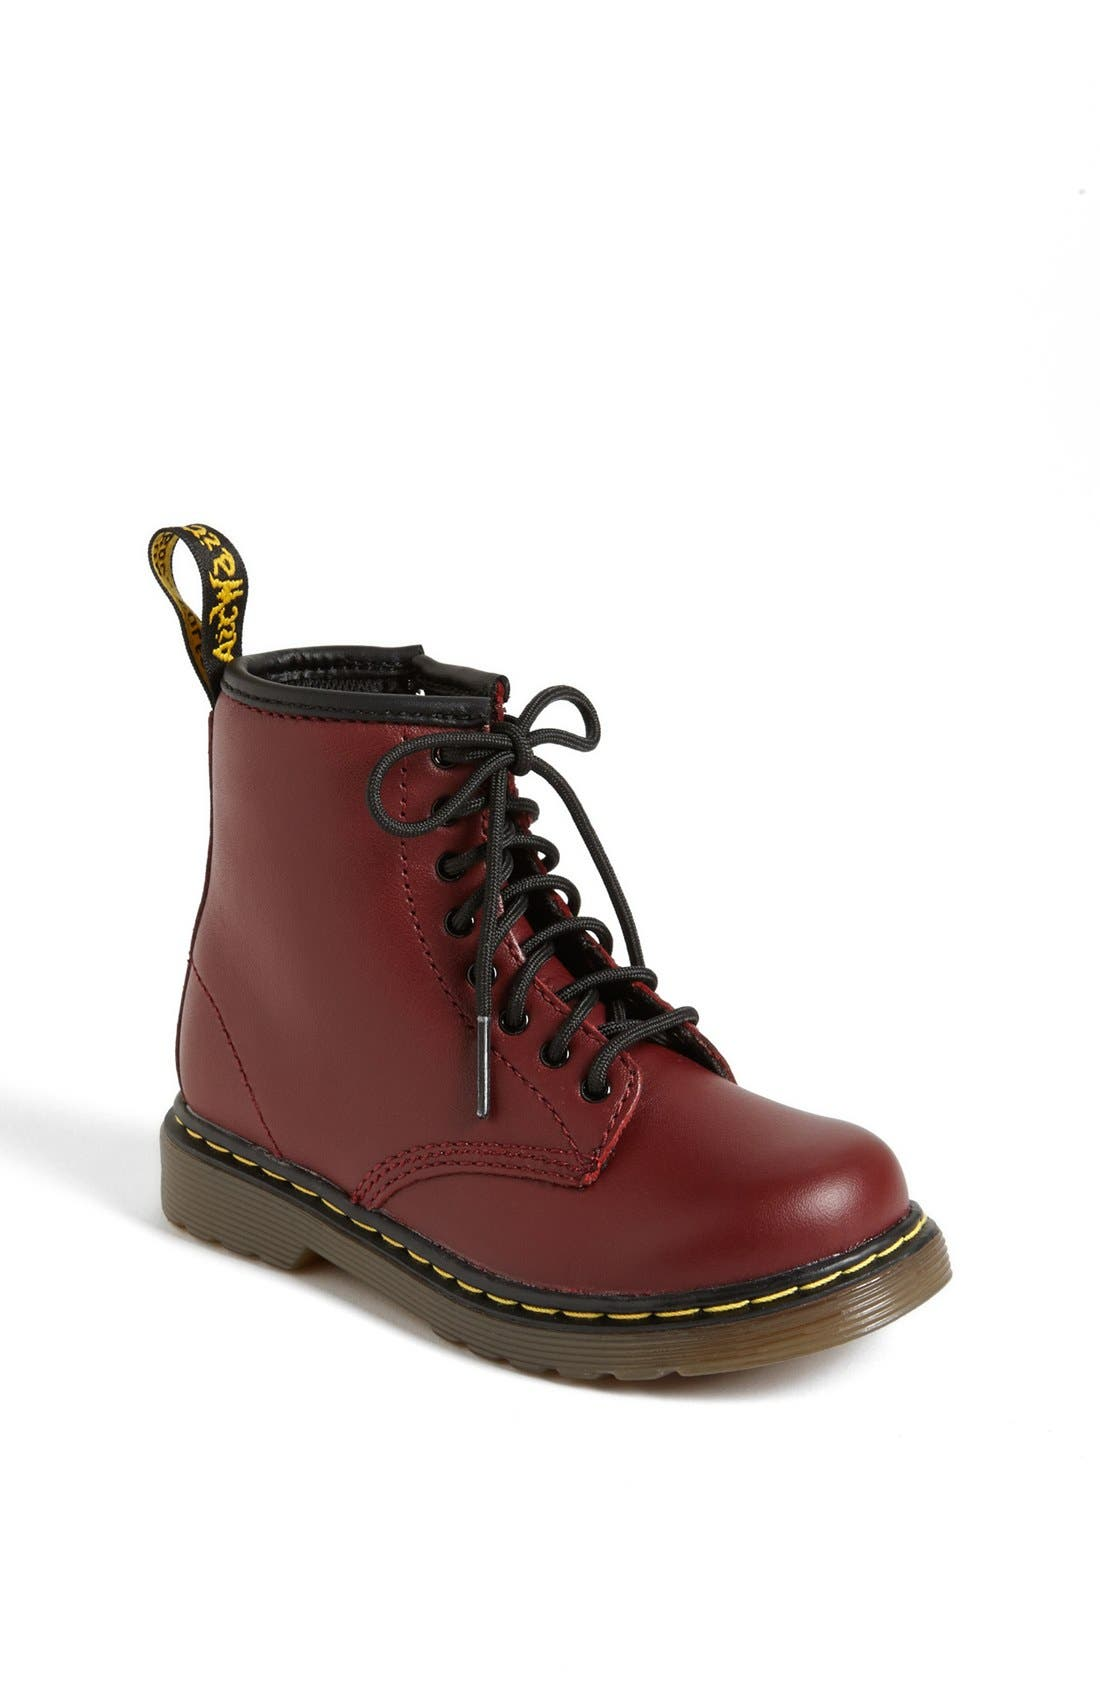 Alternate Image 1 Selected - Dr. Martens Boot (Walker, Toddler & Little Kid)